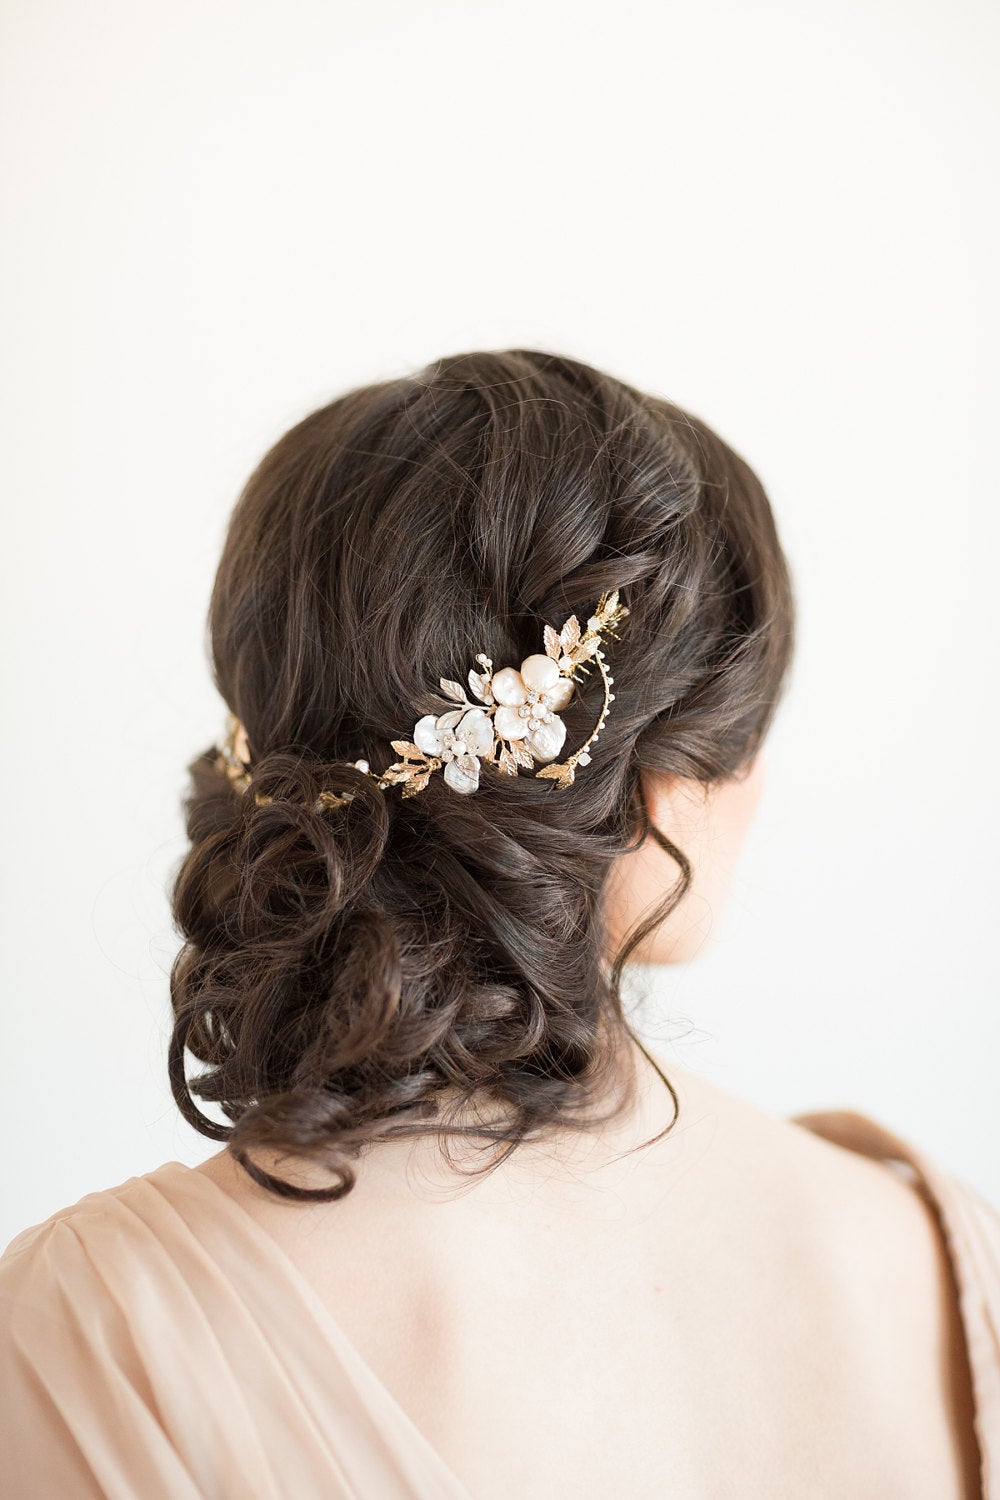 Wedding Pearl Headpiece, Bridal Hairpiece, Gold Crystal Hair Swag, Silver Vine, Comb